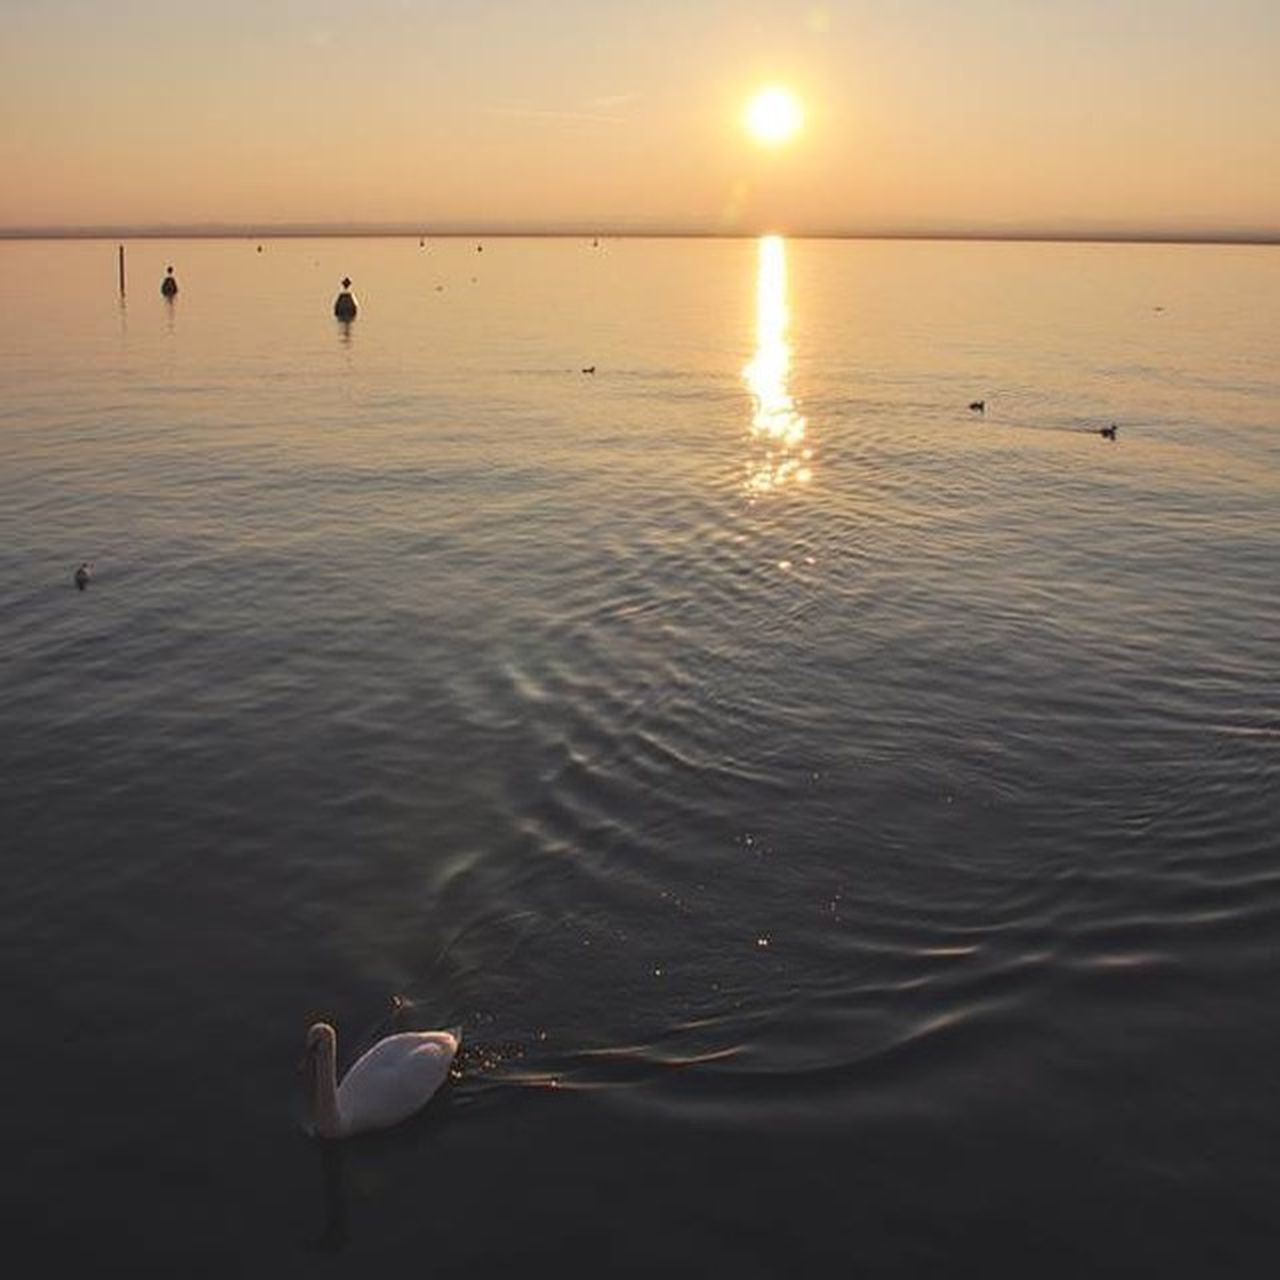 water, sunset, bird, sun, reflection, animal themes, tranquil scene, beauty in nature, scenics, wildlife, tranquility, sea, animals in the wild, orange color, silhouette, swimming, idyllic, nature, rippled, sunlight